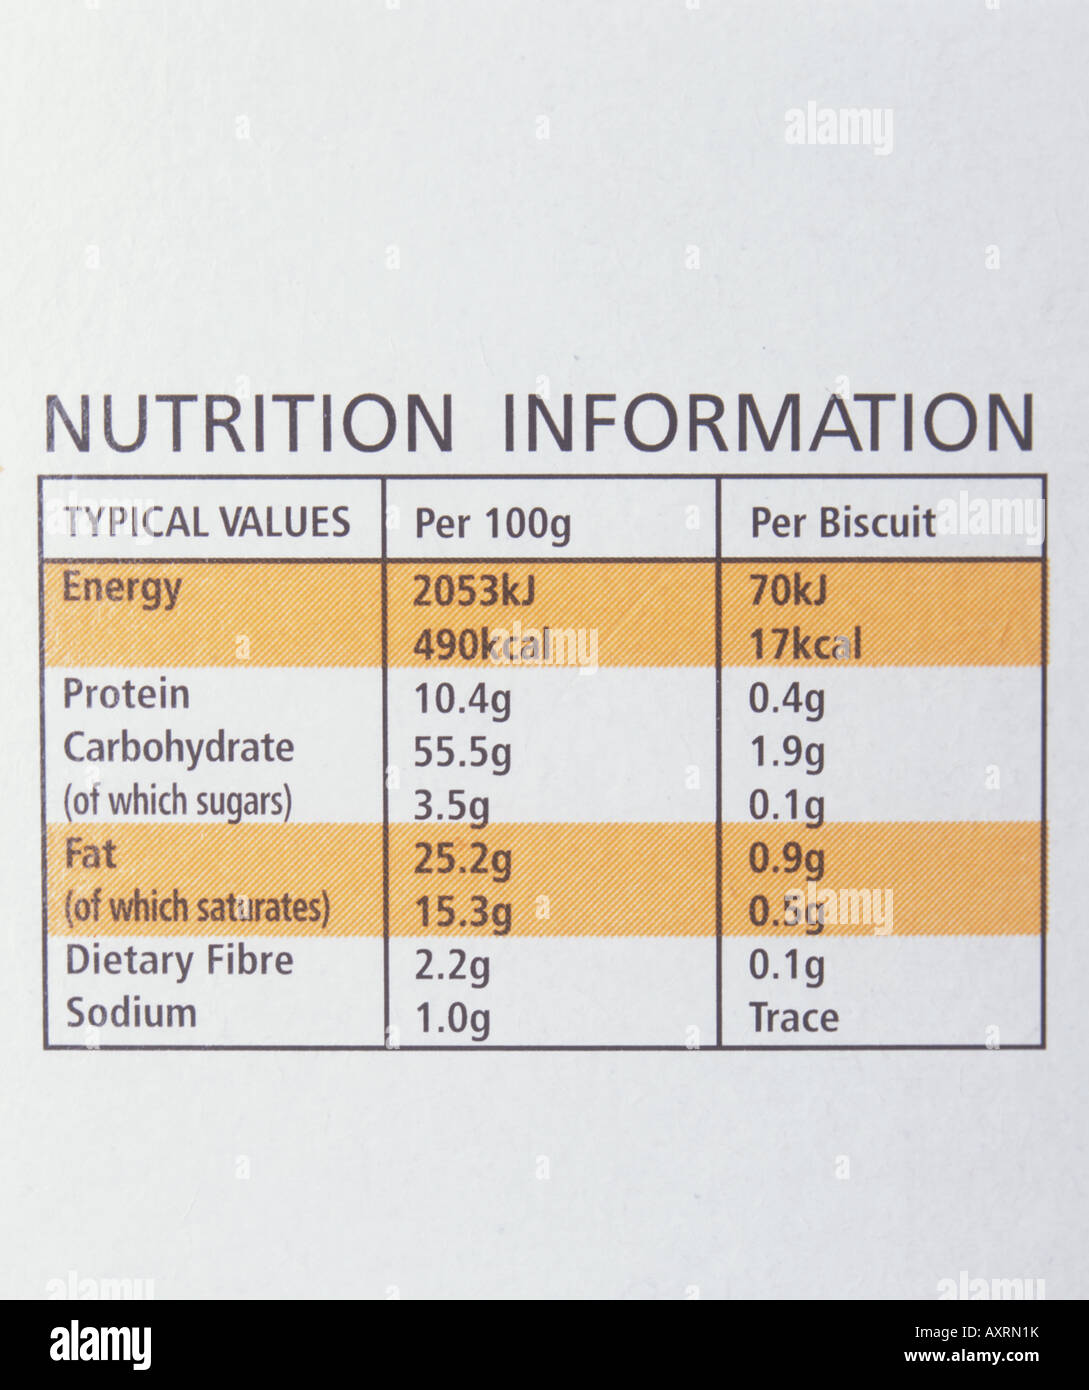 Nutrition information on cereal packet - Stock Image